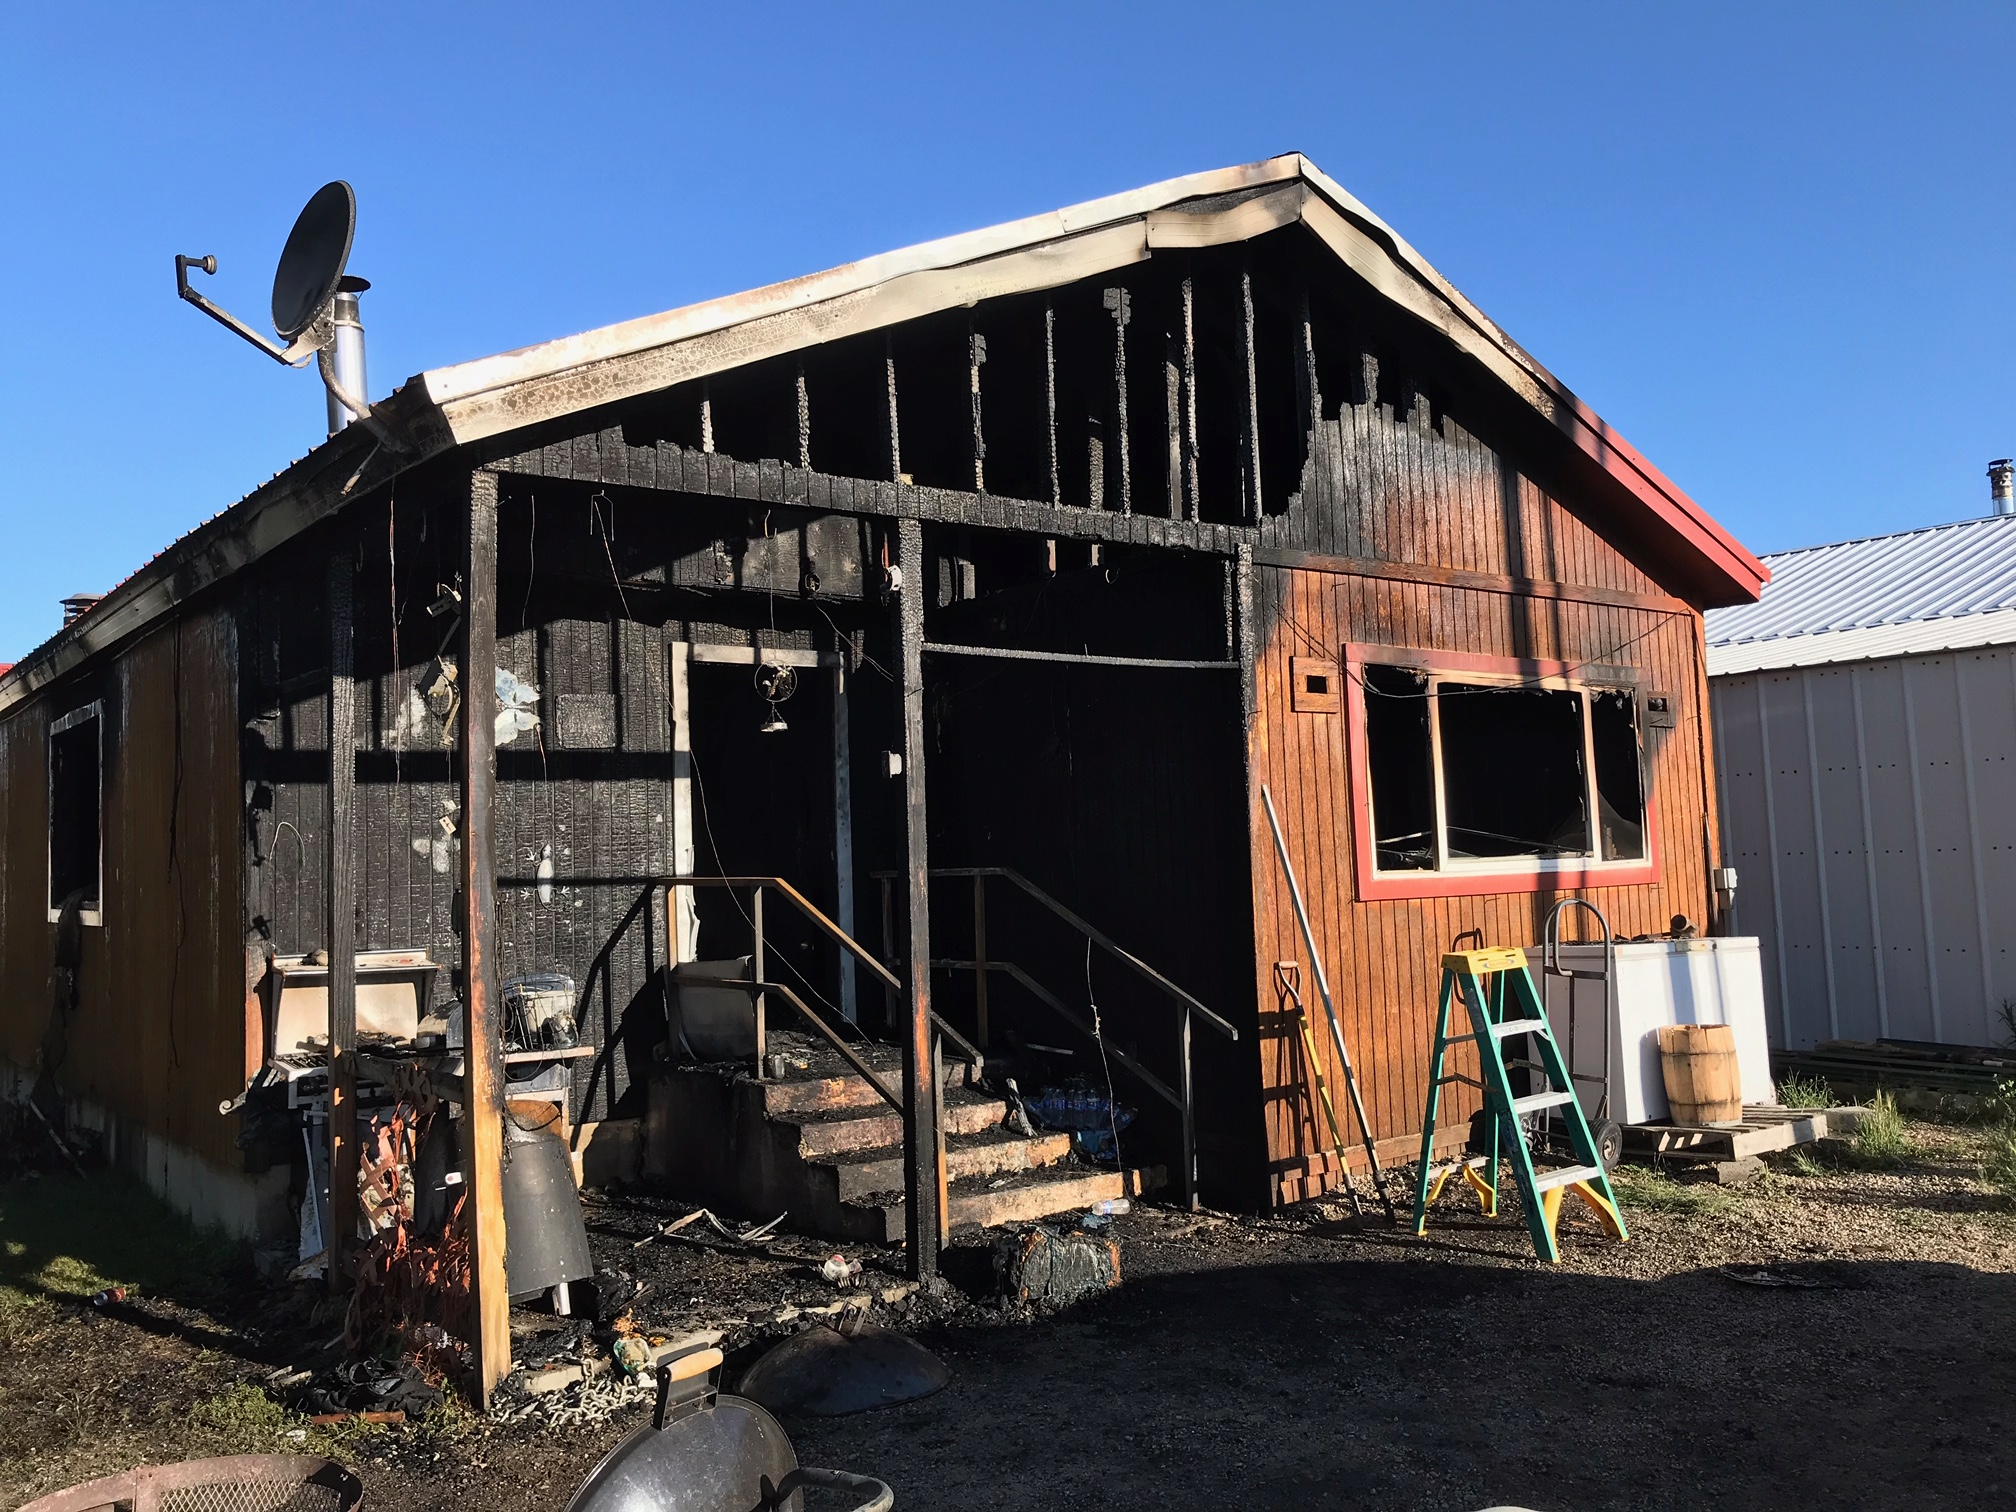 Sublette County First Responders React to Structure Fire in Pinedale